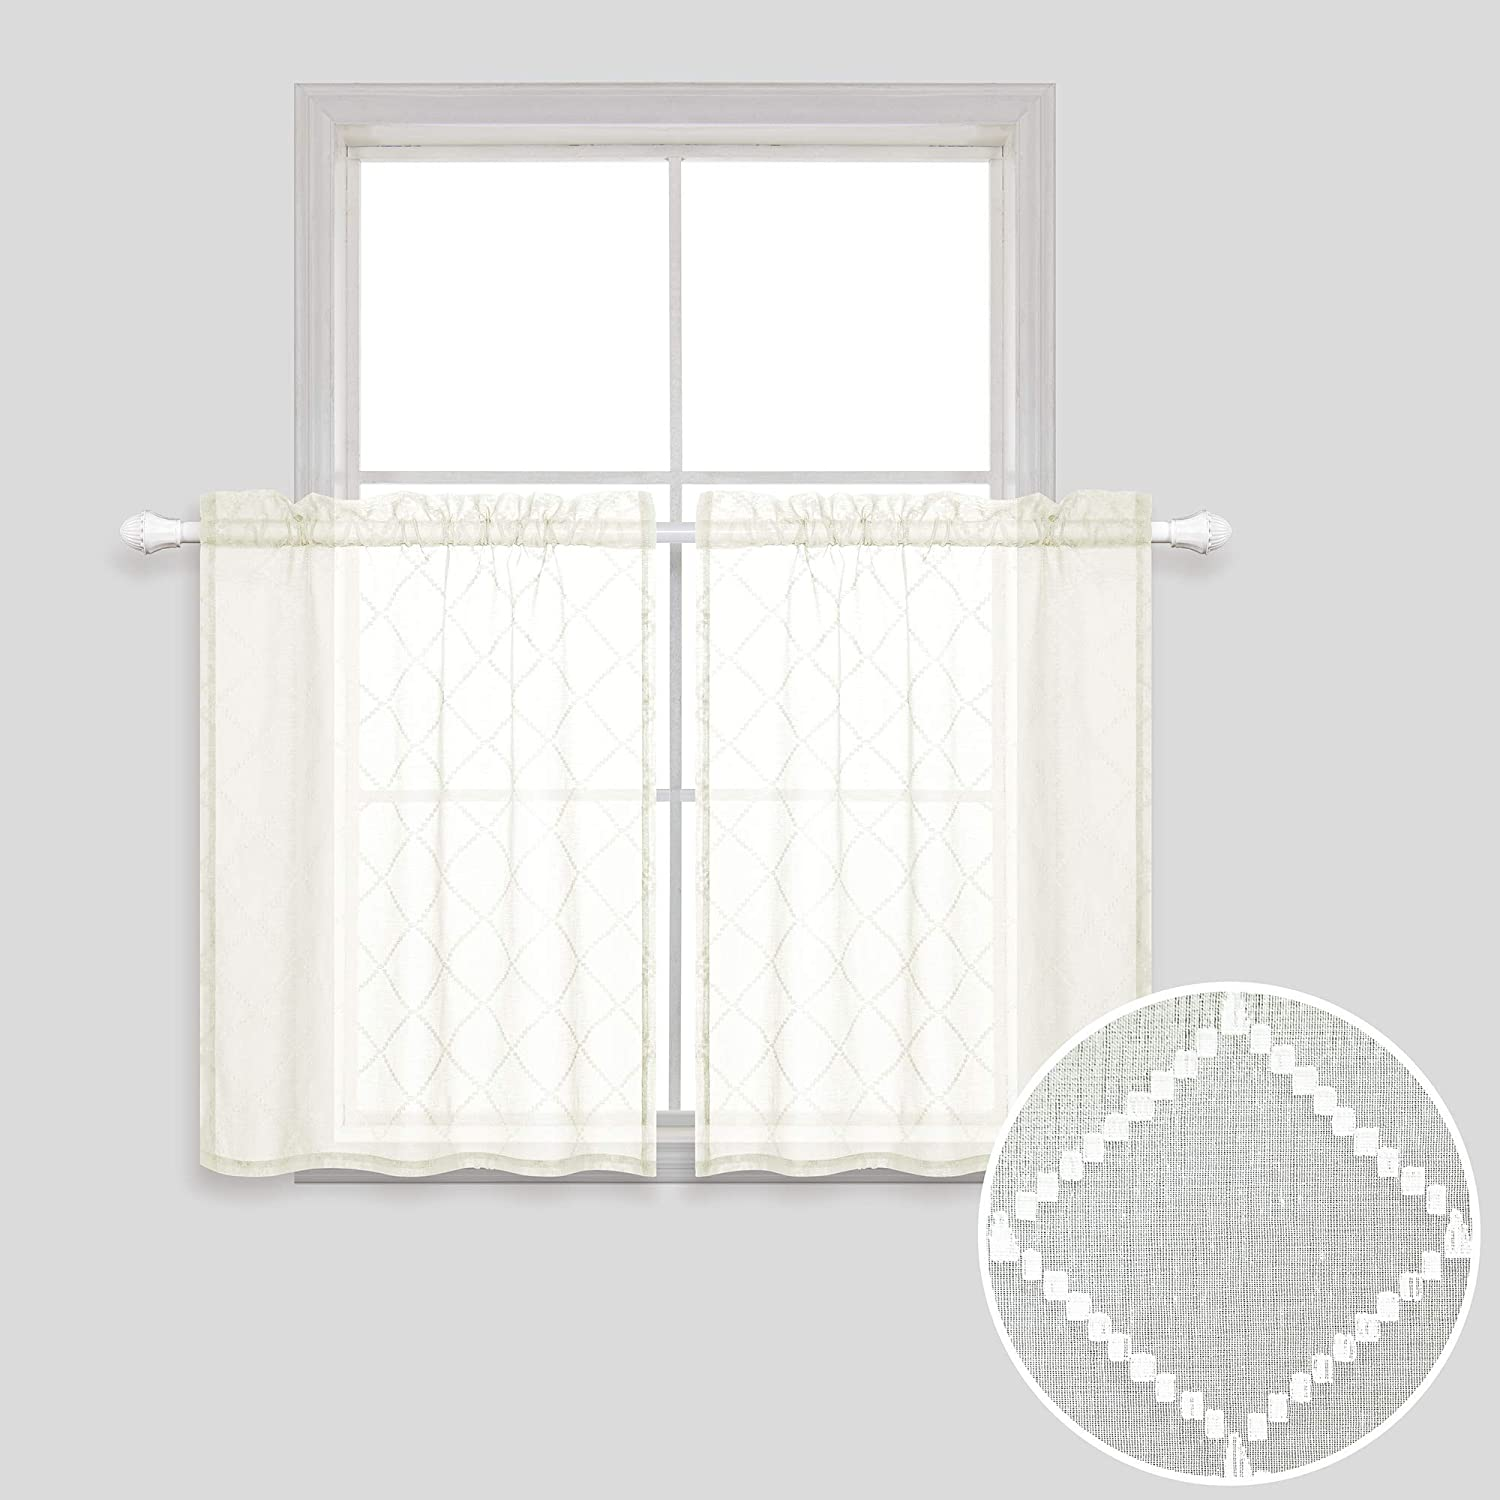 30 Inch Curtains for Kitchen Windows Set of 2 Pack Cafe Curtain Tiers Sheer Cream Beige Short Curtains for Small Windows 30x30 Inch Length